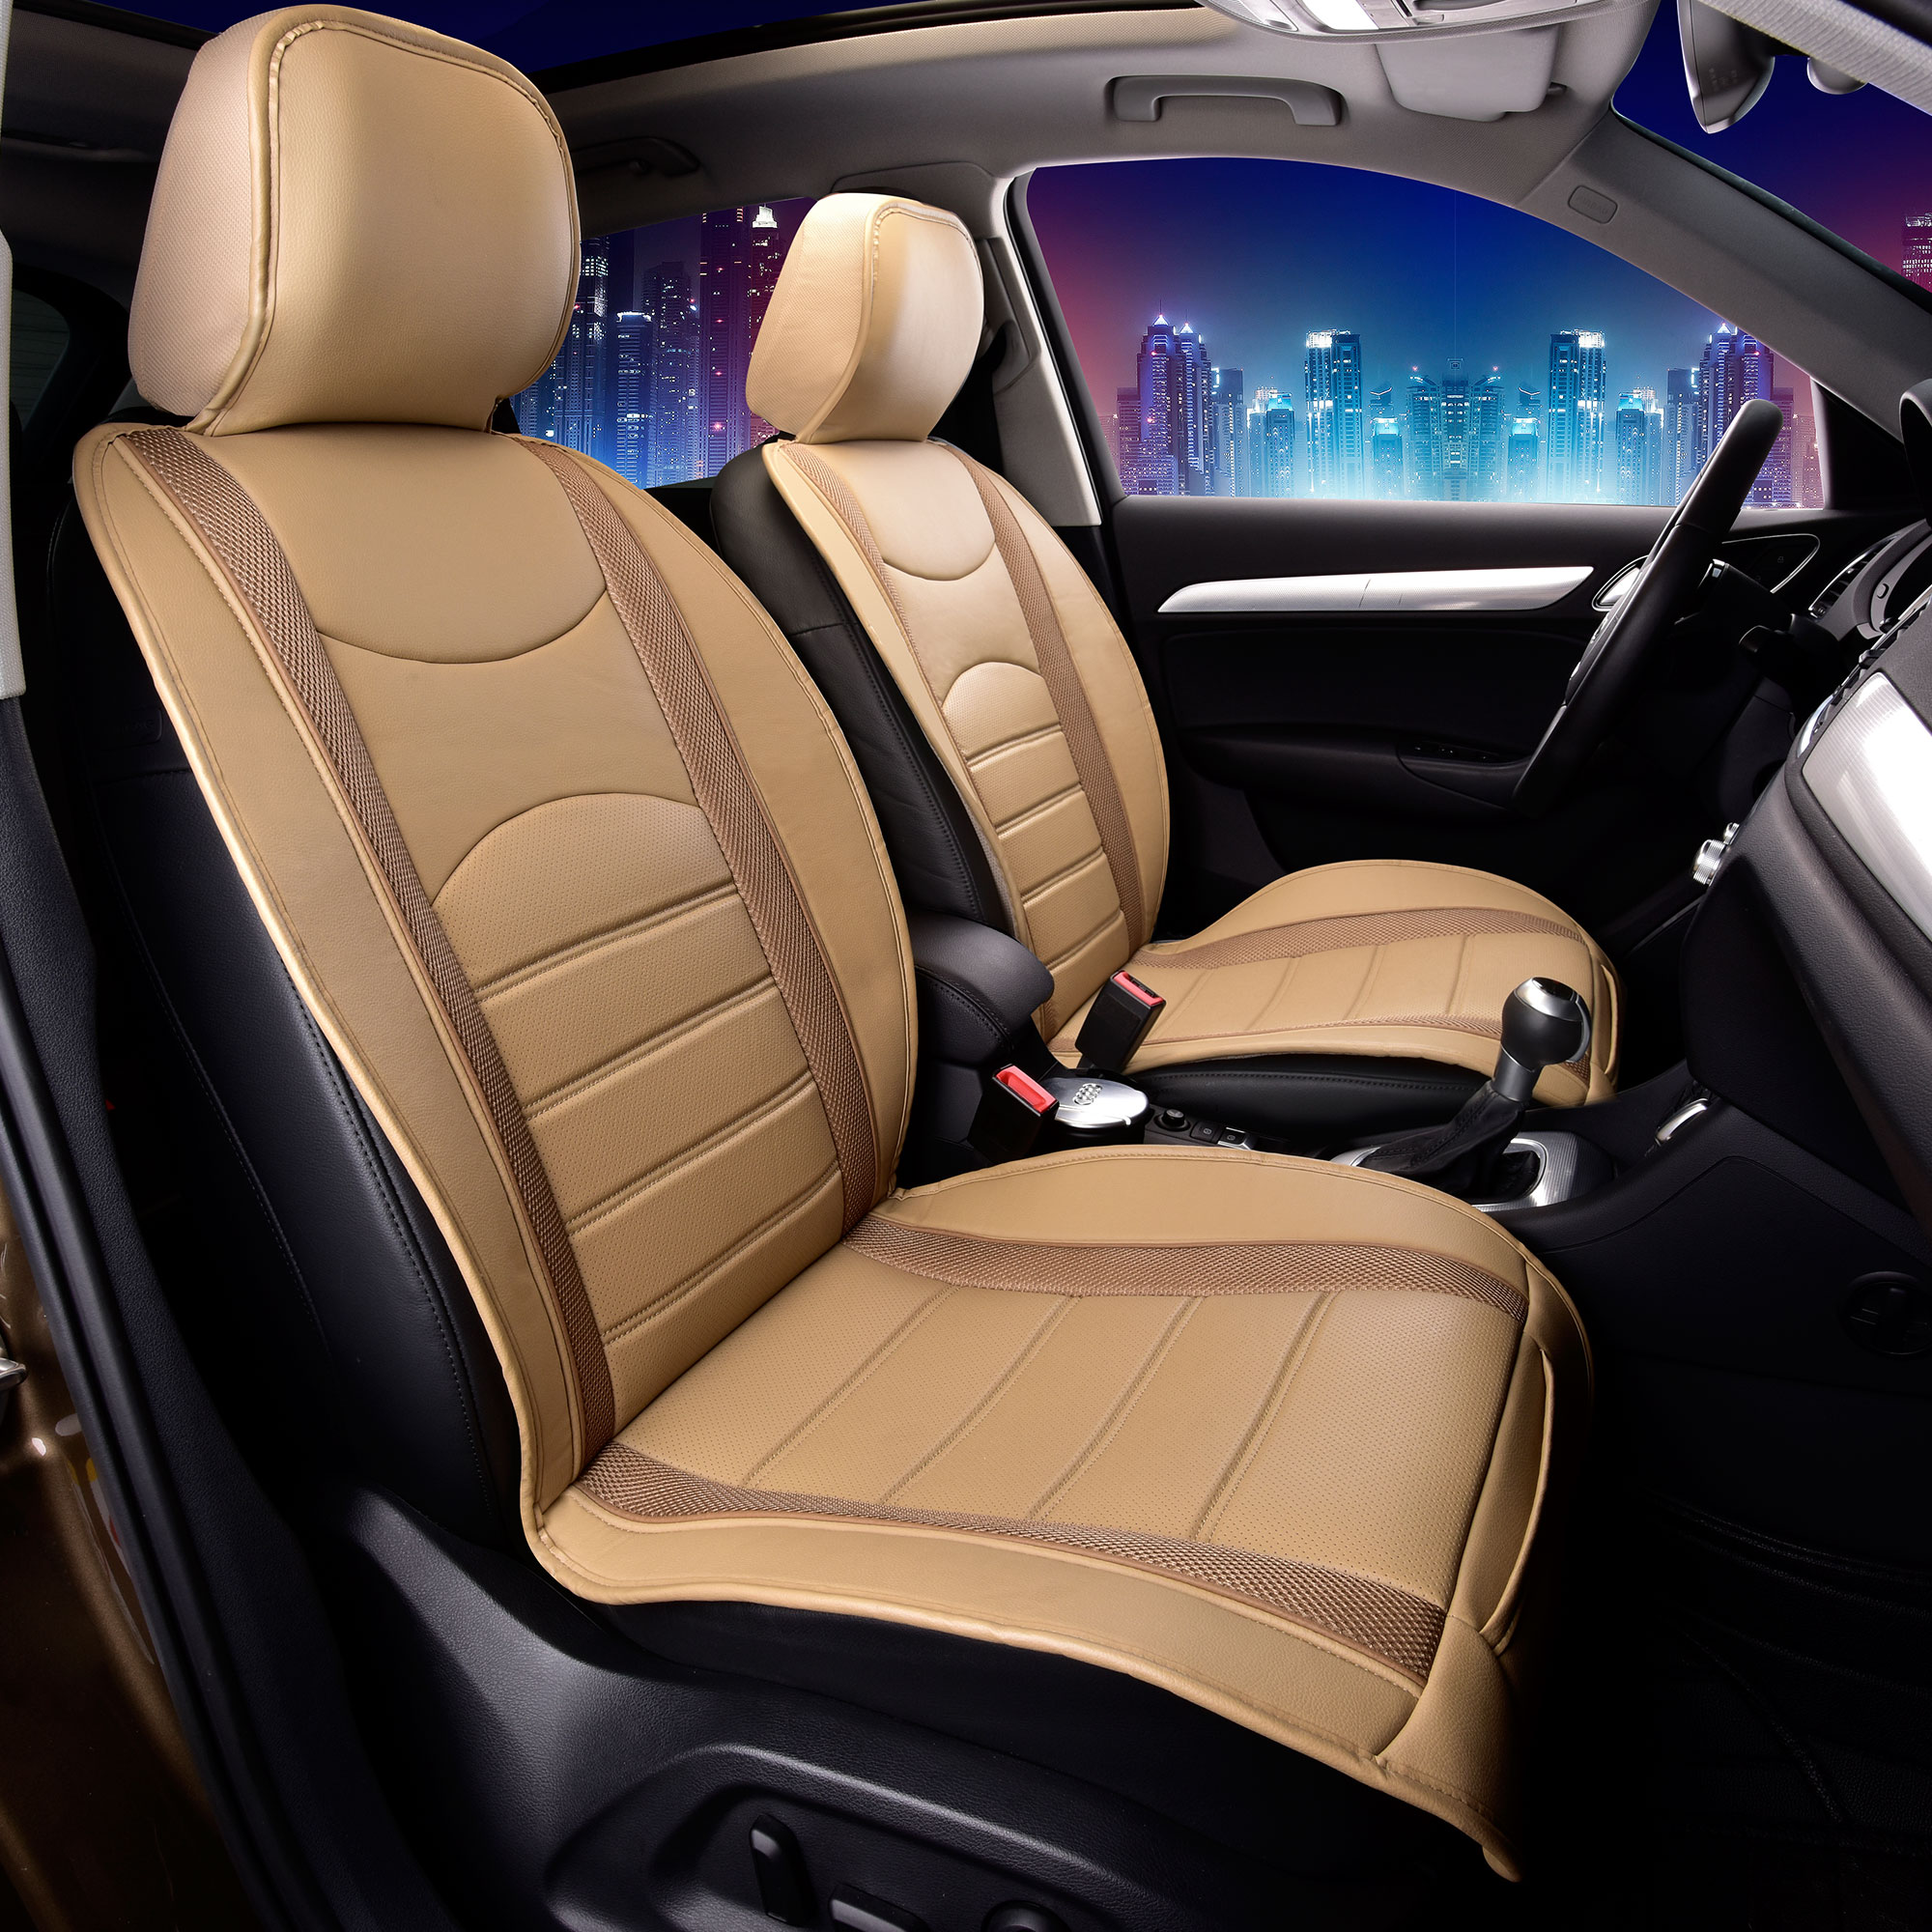 Neoblen Leatheretter Front Seat Cushions for Auto Car SUV Truck Beige